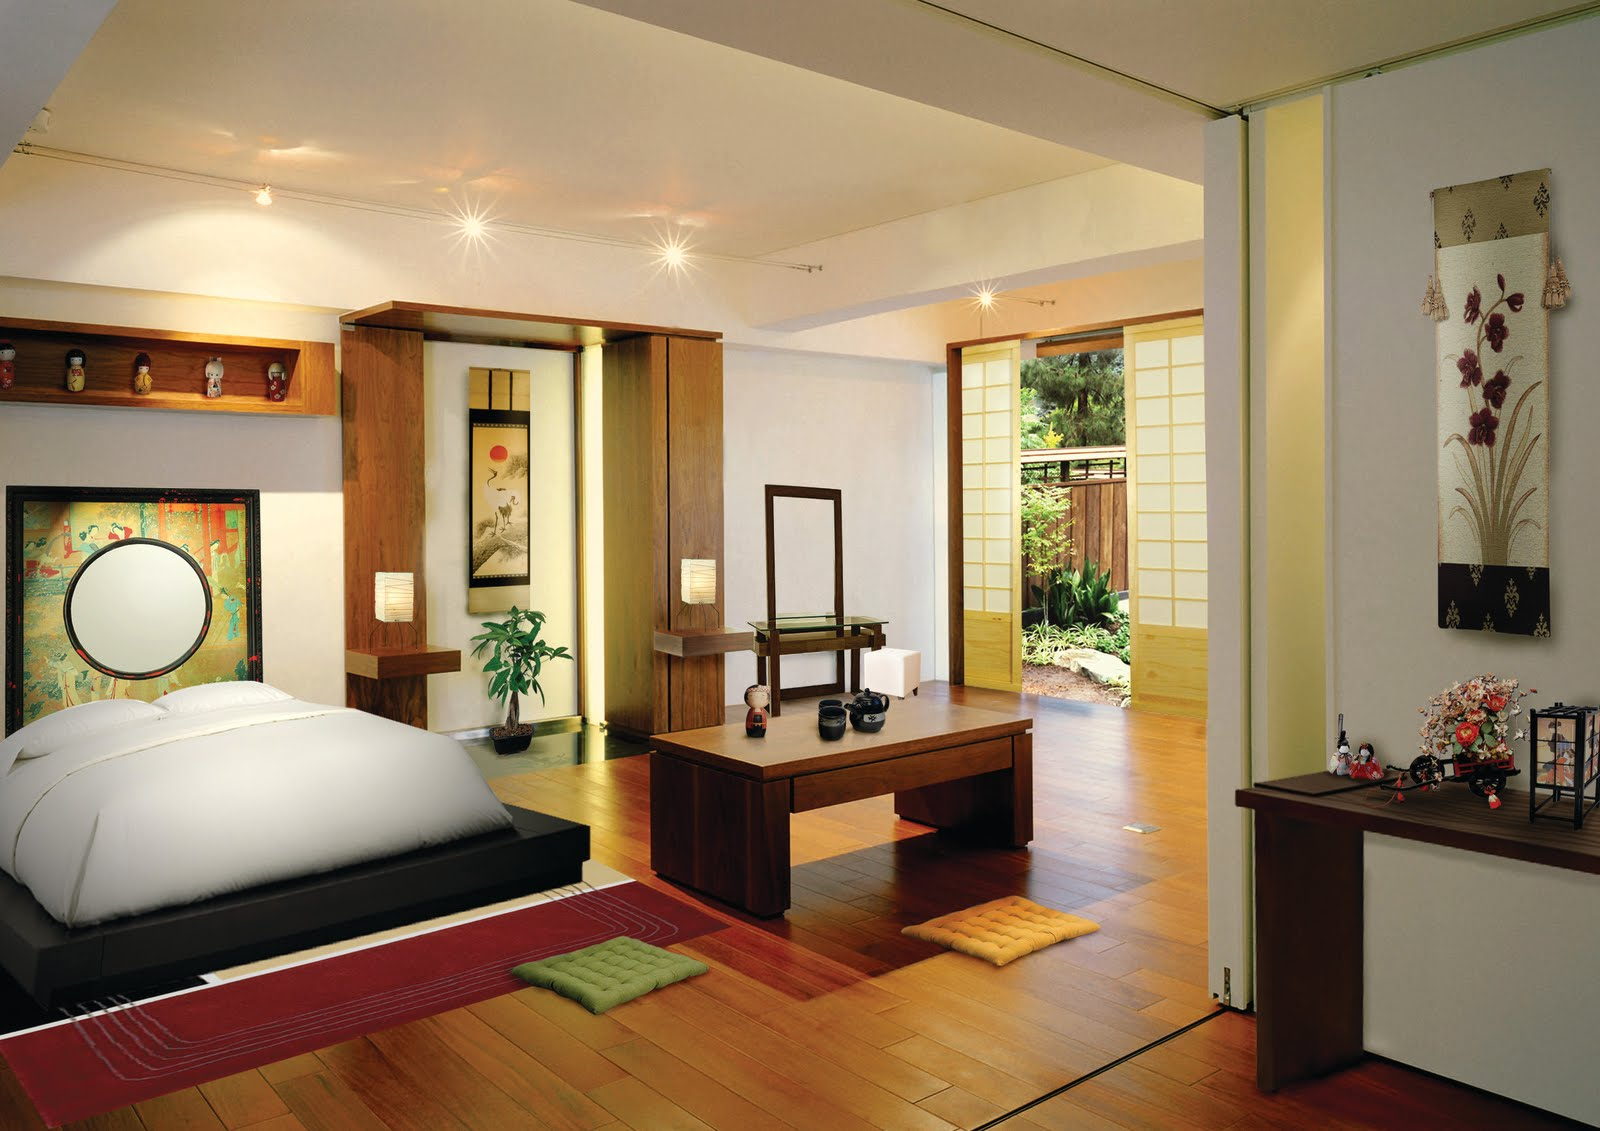 Melokumi japanese style bedroom design Japanese inspired room design